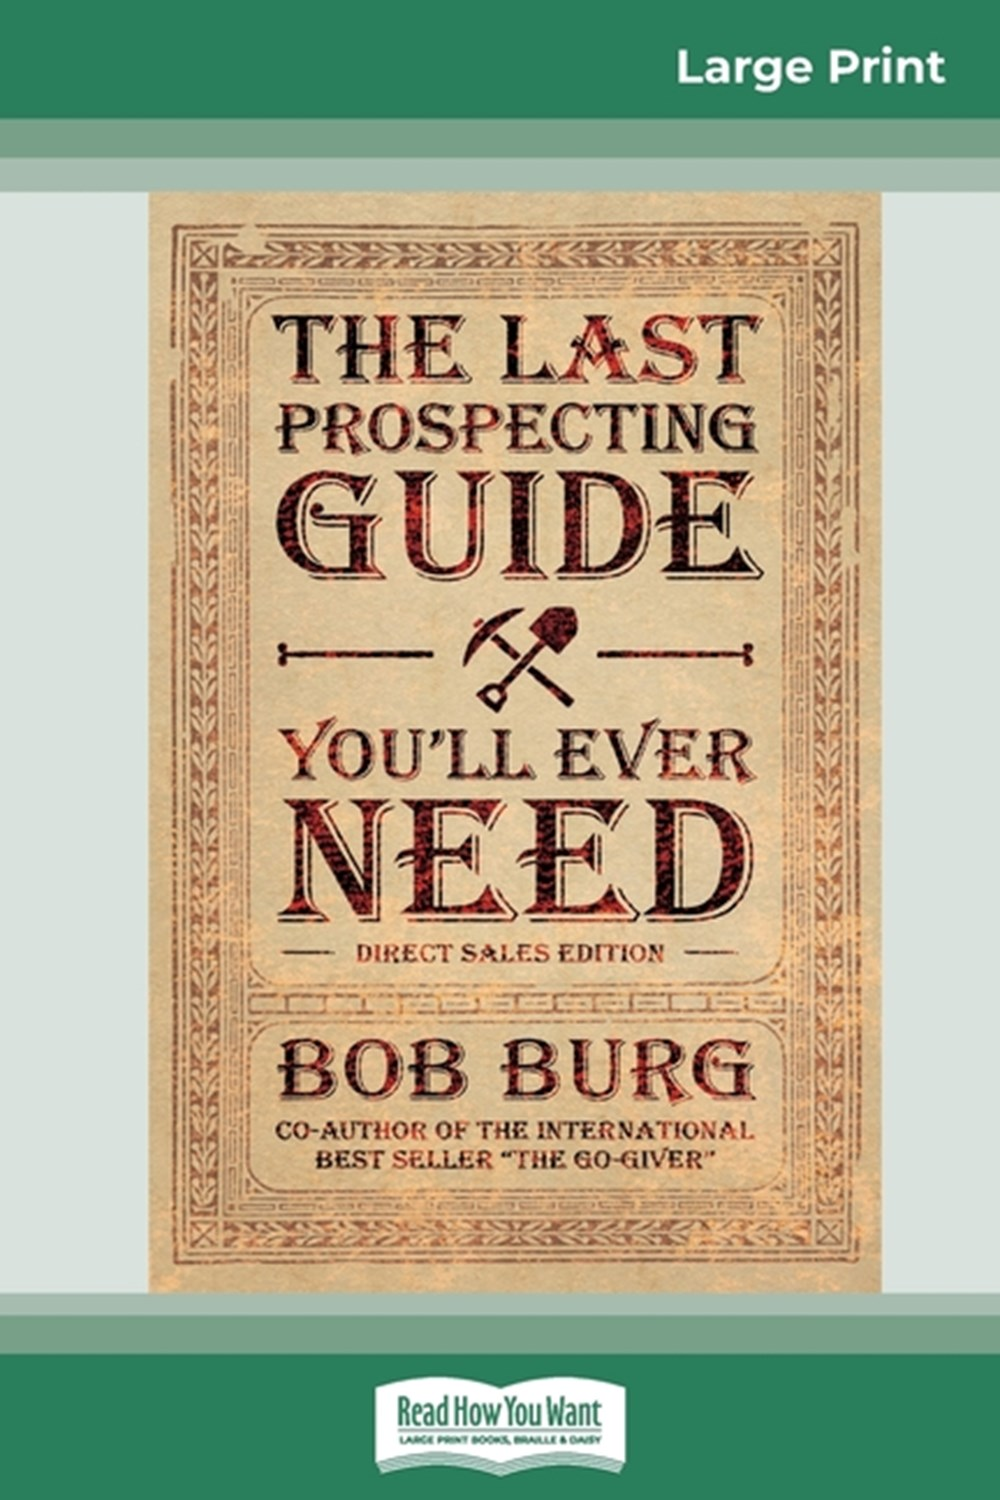 Last Prospecting Guide You'll Ever Need Direct Sales Edition (16pt Large Print Edition)